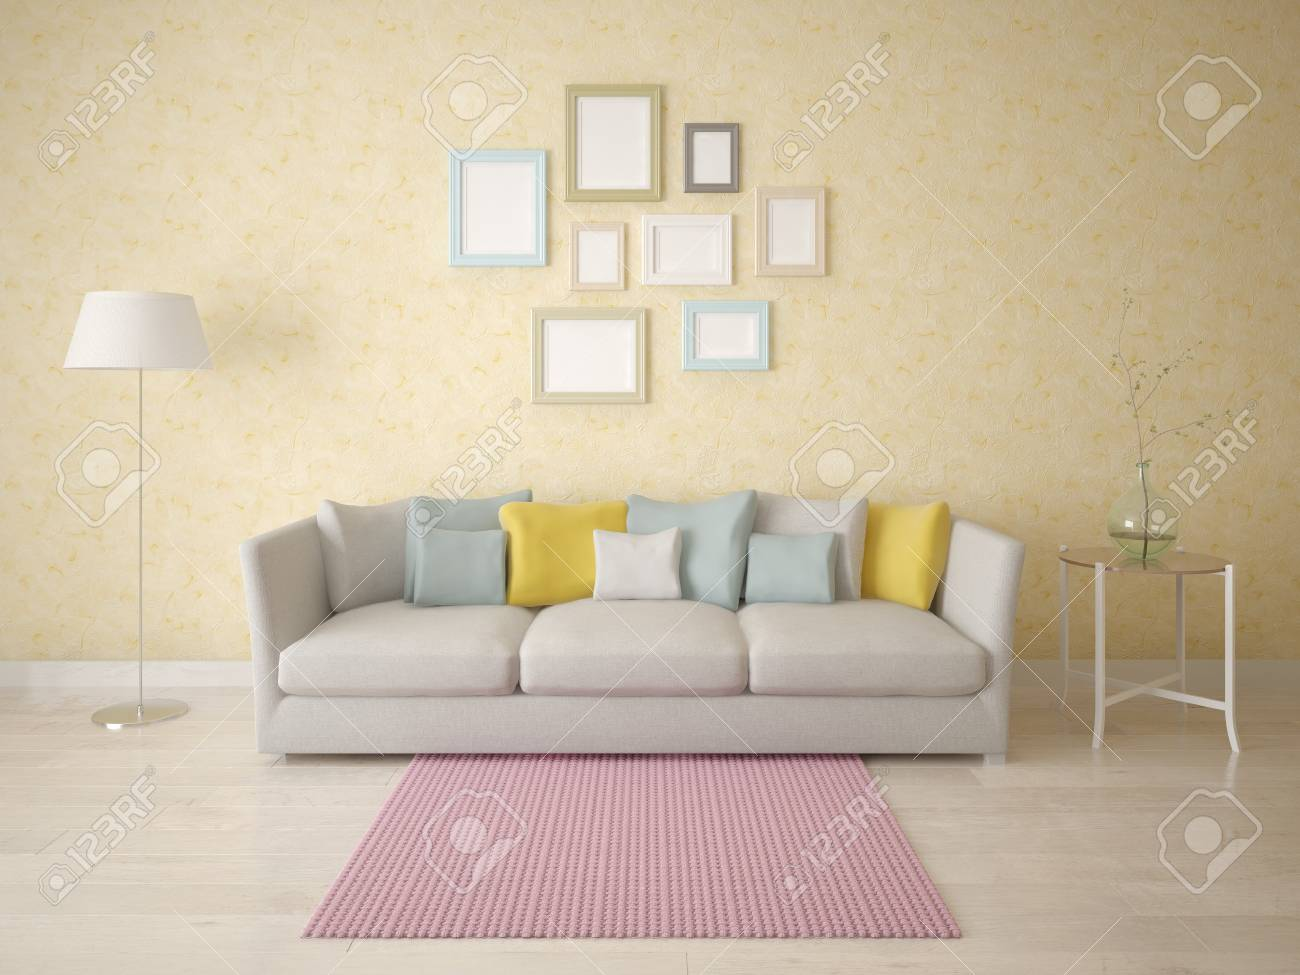 Mock up a stylish living room with an exclusive sofa on the background..